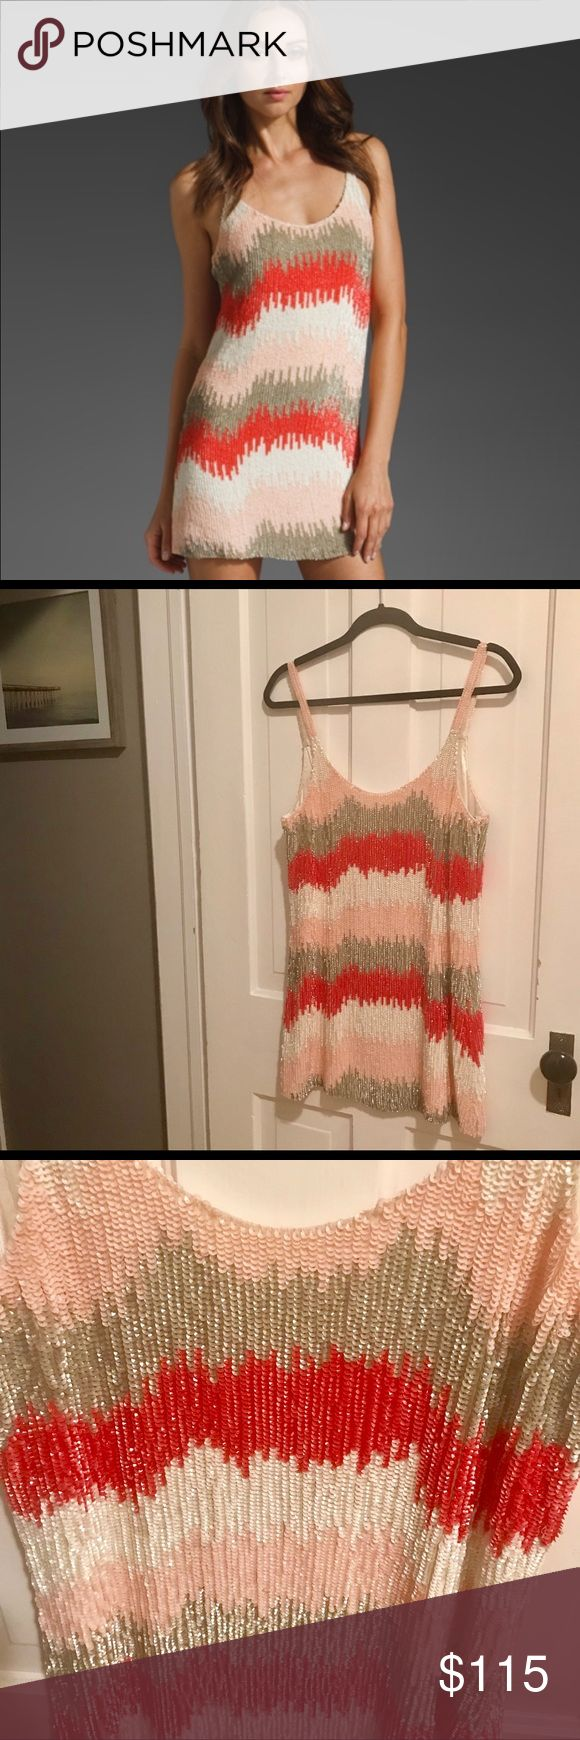 Parker 🎀 Pink Stripe Sequin Dress Purchased off PM + never ended up wearing. Size women's small. Fits true to size. Beautiful detail and like new! A few missing sequins on the right tank (see 📸 for details). Barely noticeable. Retailed for $398. Does not include extra beans or sequins. Sorry! No ❌ trades! Parker Dresses Mini